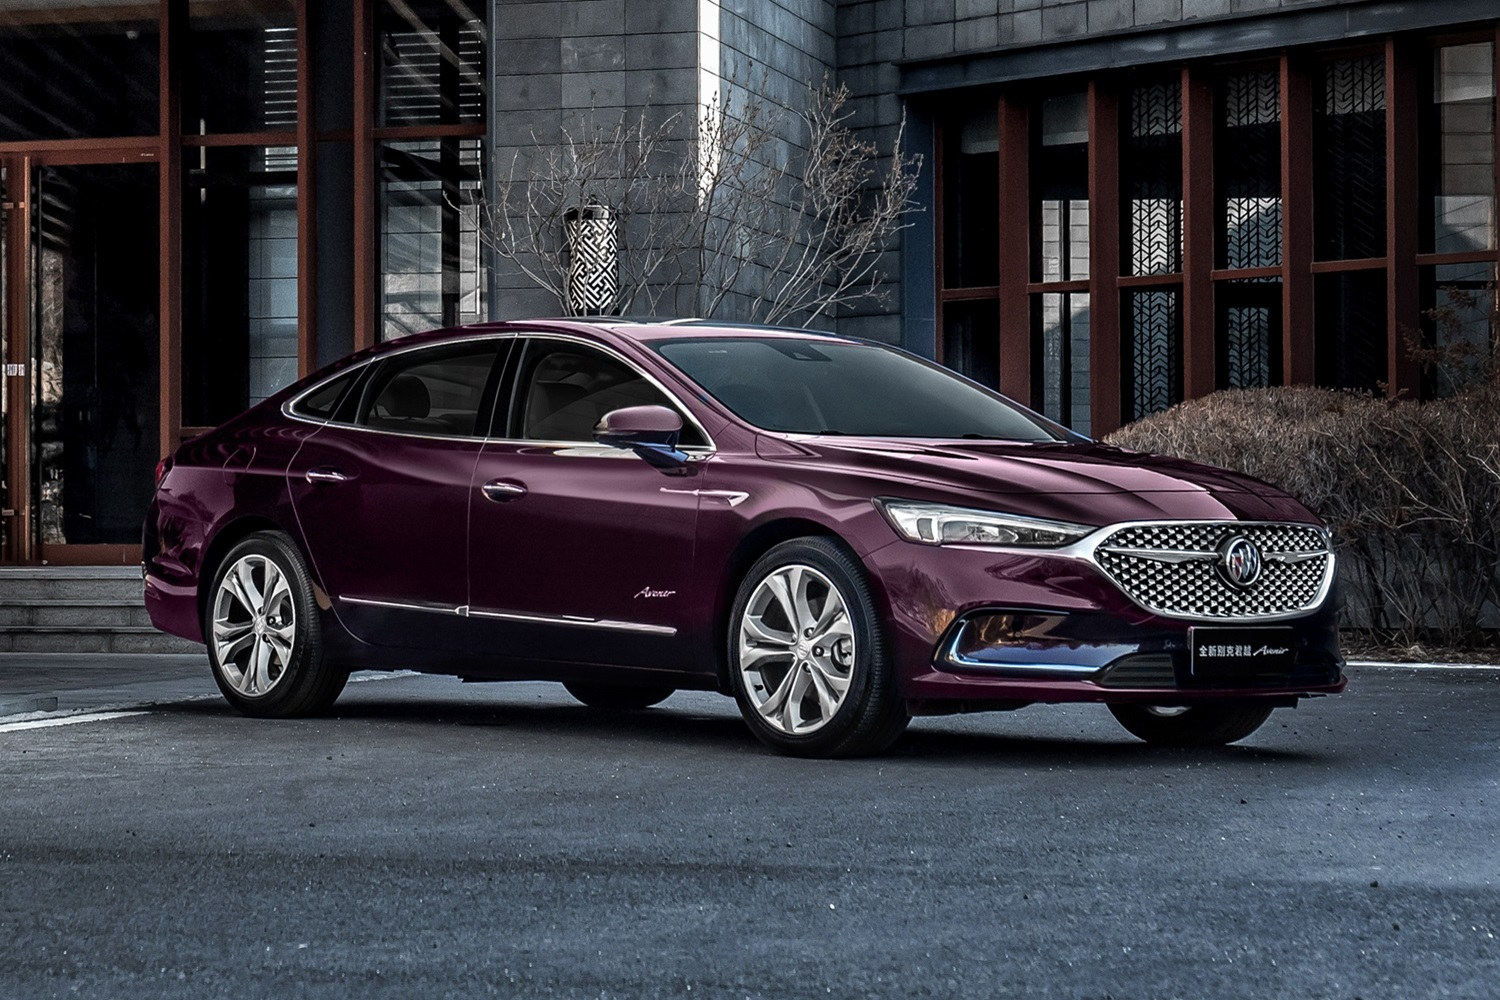 2021 Buick Lacrosse Gets More Refined Than Ever | Gm Authority 2021 Buick Lacrosse Pictures, Cost, Trims